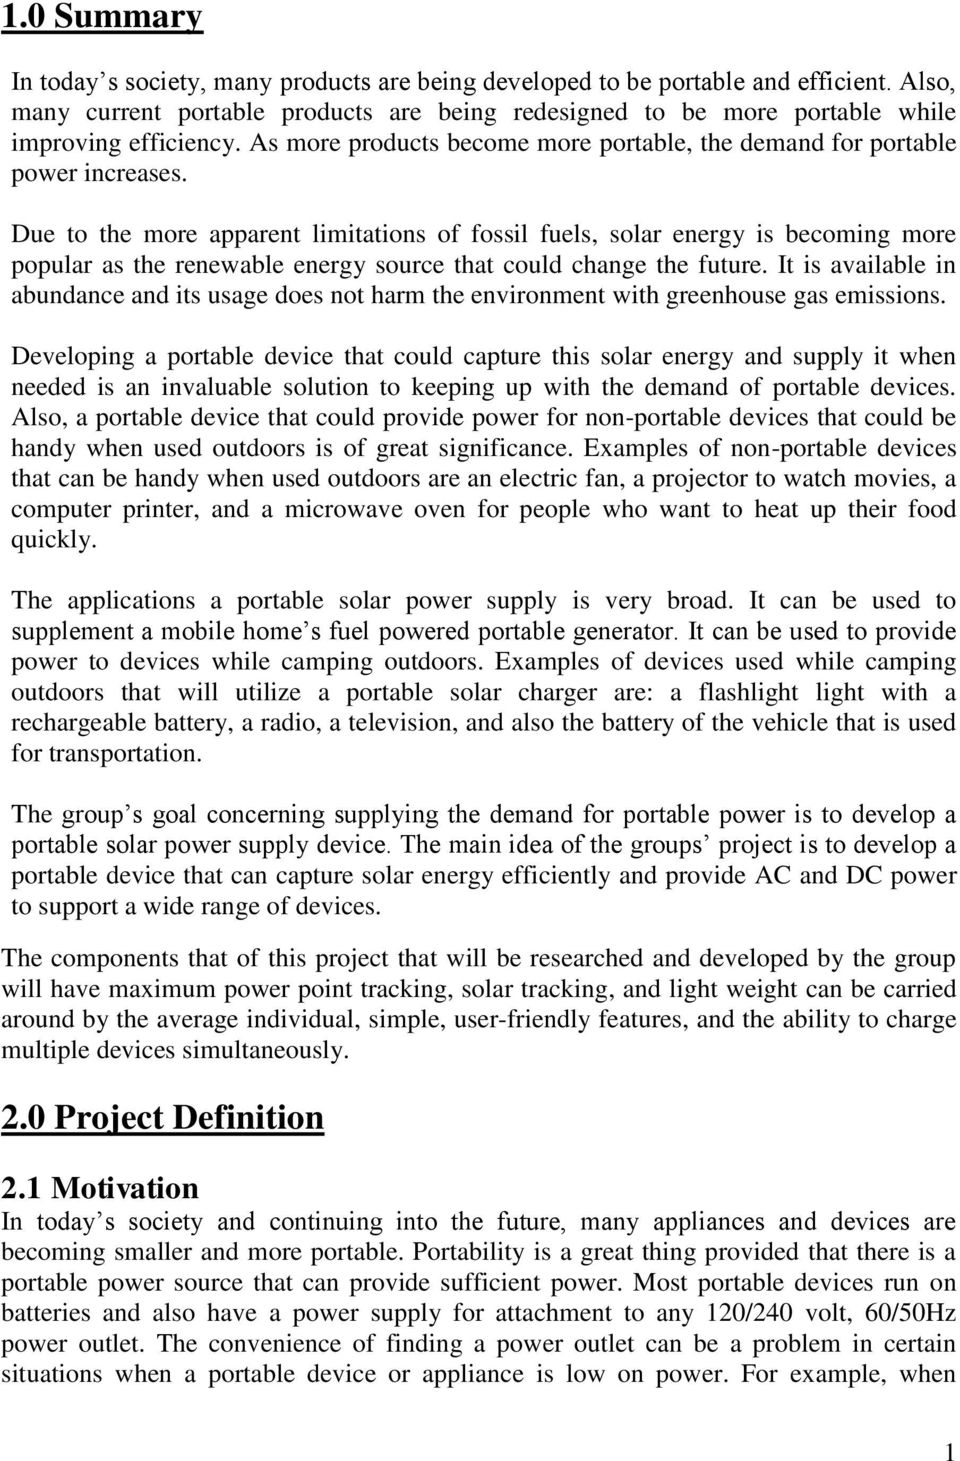 University Of Central Florida Senior Design Project Portable Solar 555 Timer Projects Buck Converter Using Ne555 31 Due To The More Apparent Limitations Fossil Fuels Energy Is Becoming Popular